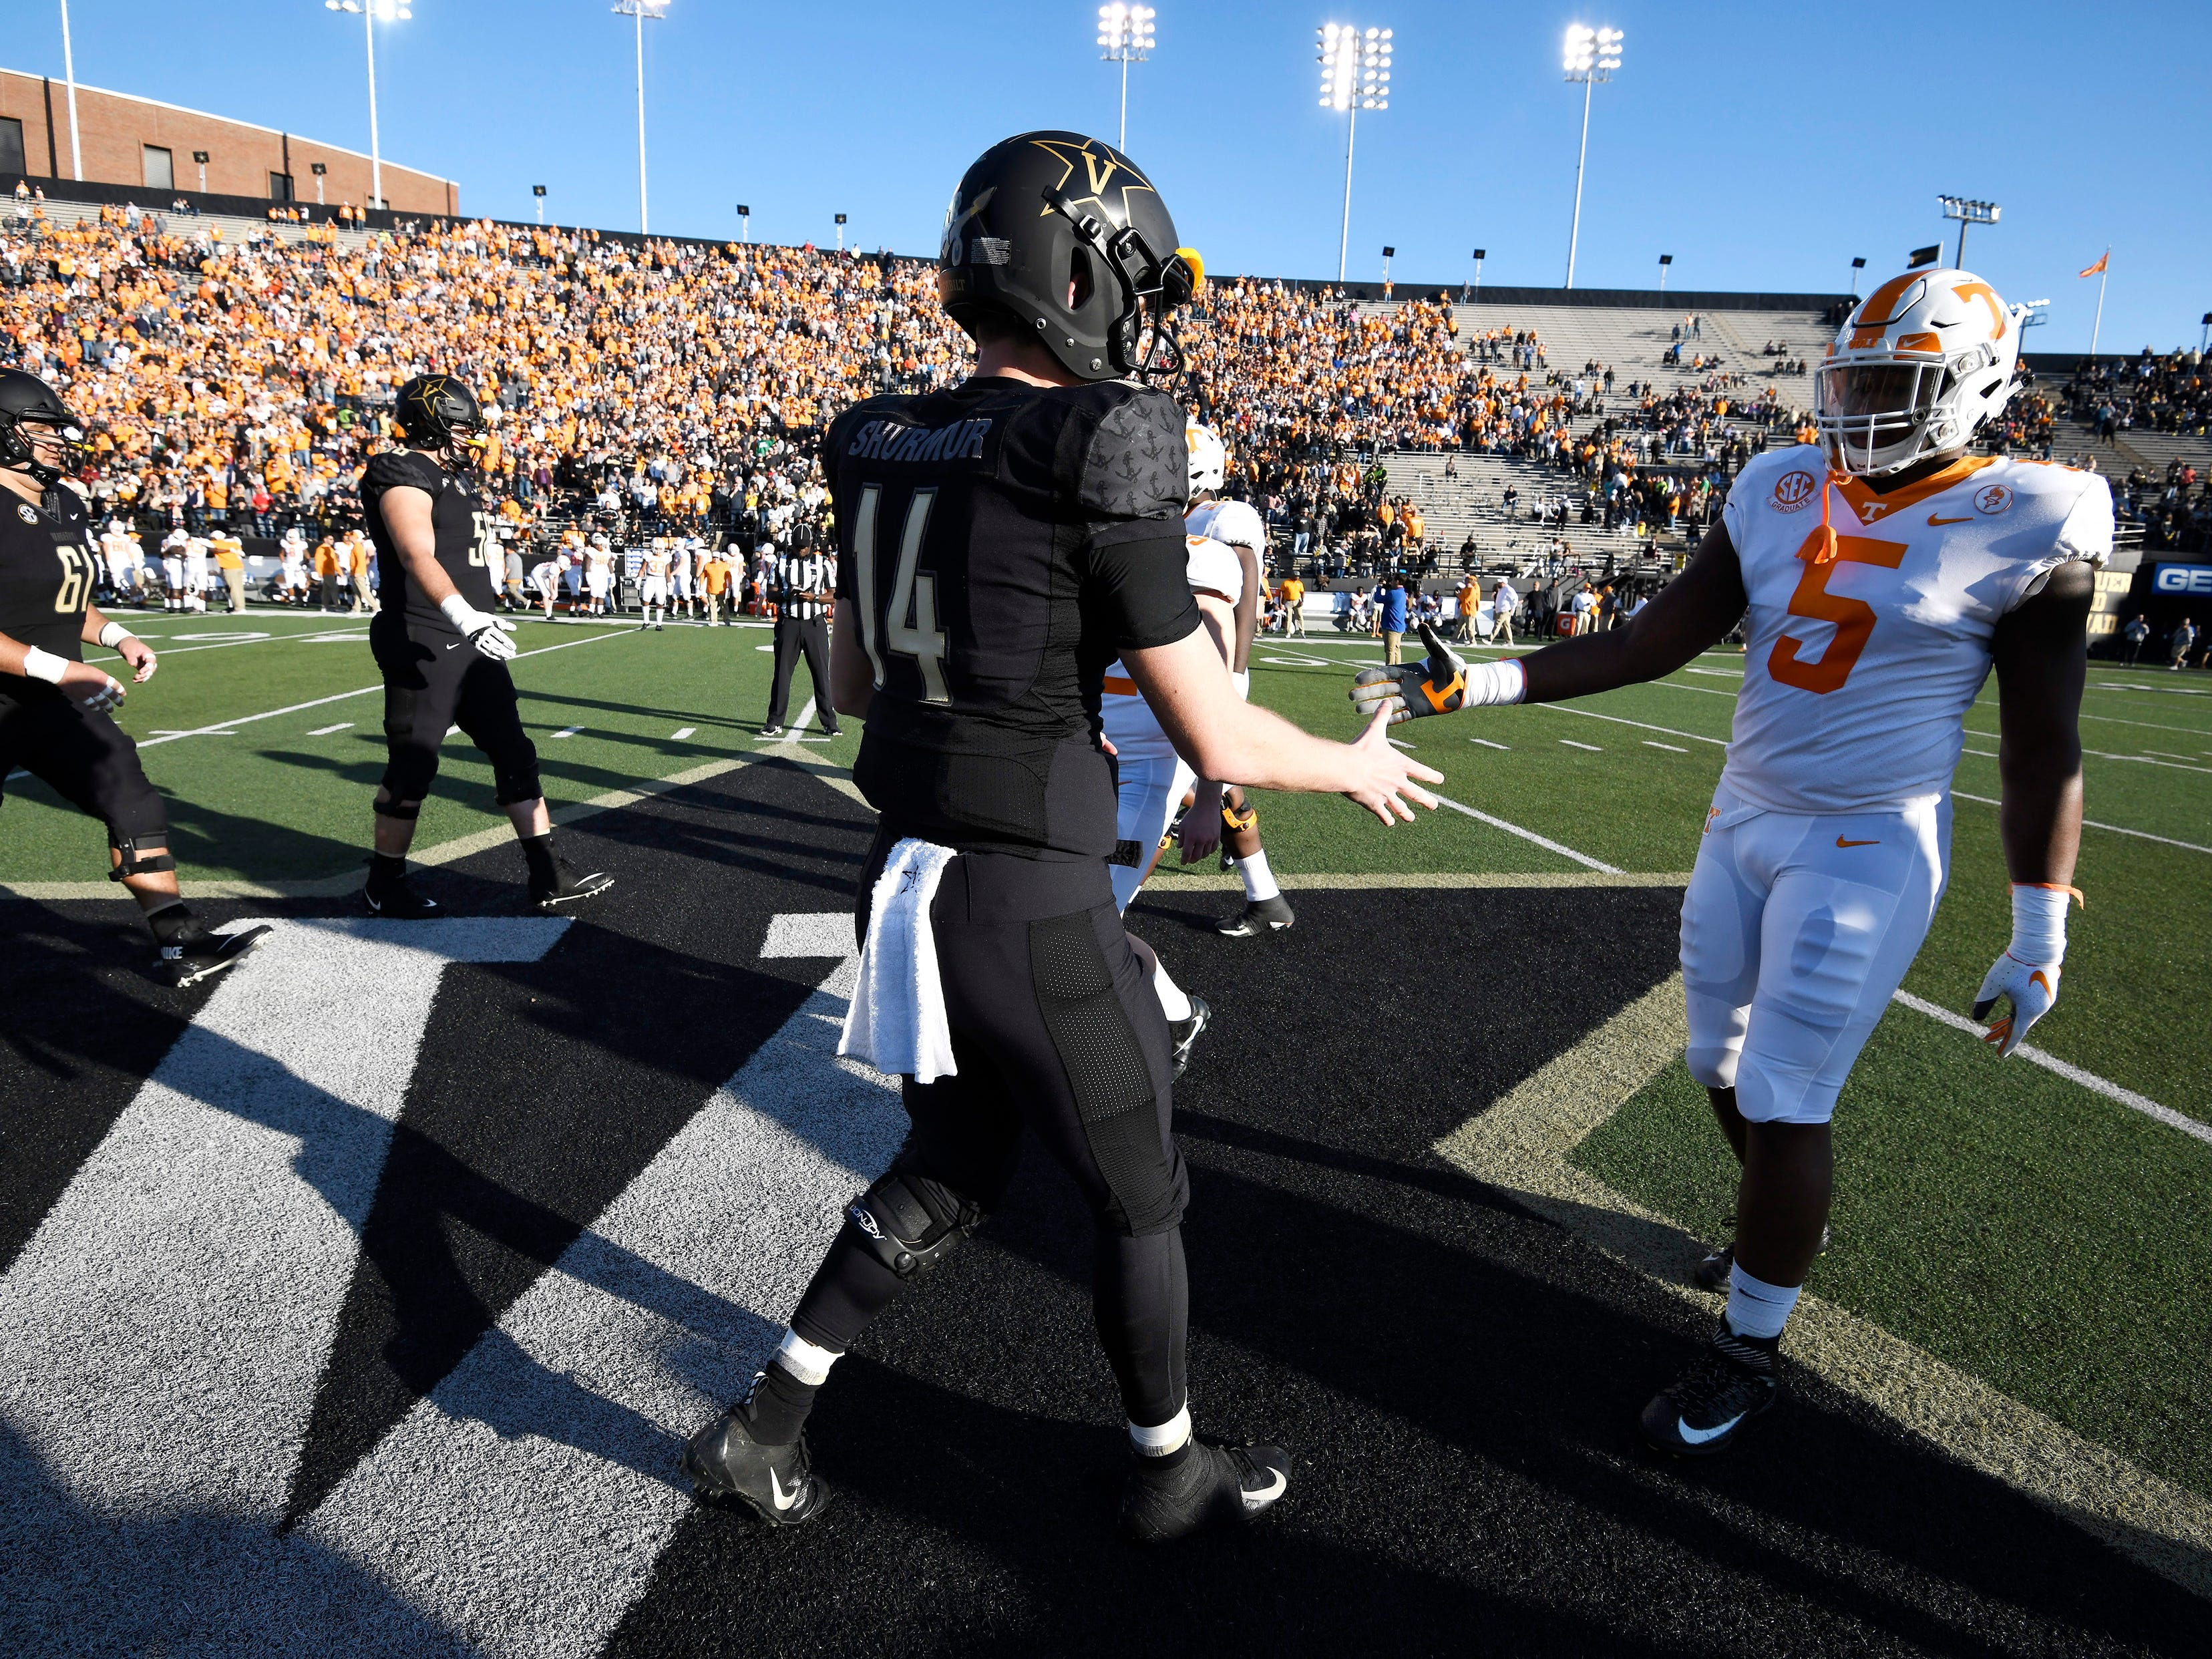 Vanderbilt quarterback Kyle Shurmur (14) and Tennessee defensive lineman Kyle Phillips (5) shake hands before the game at Vanderbilt Stadium Saturday, Nov. 24, 2018, in Nashville, Tenn.